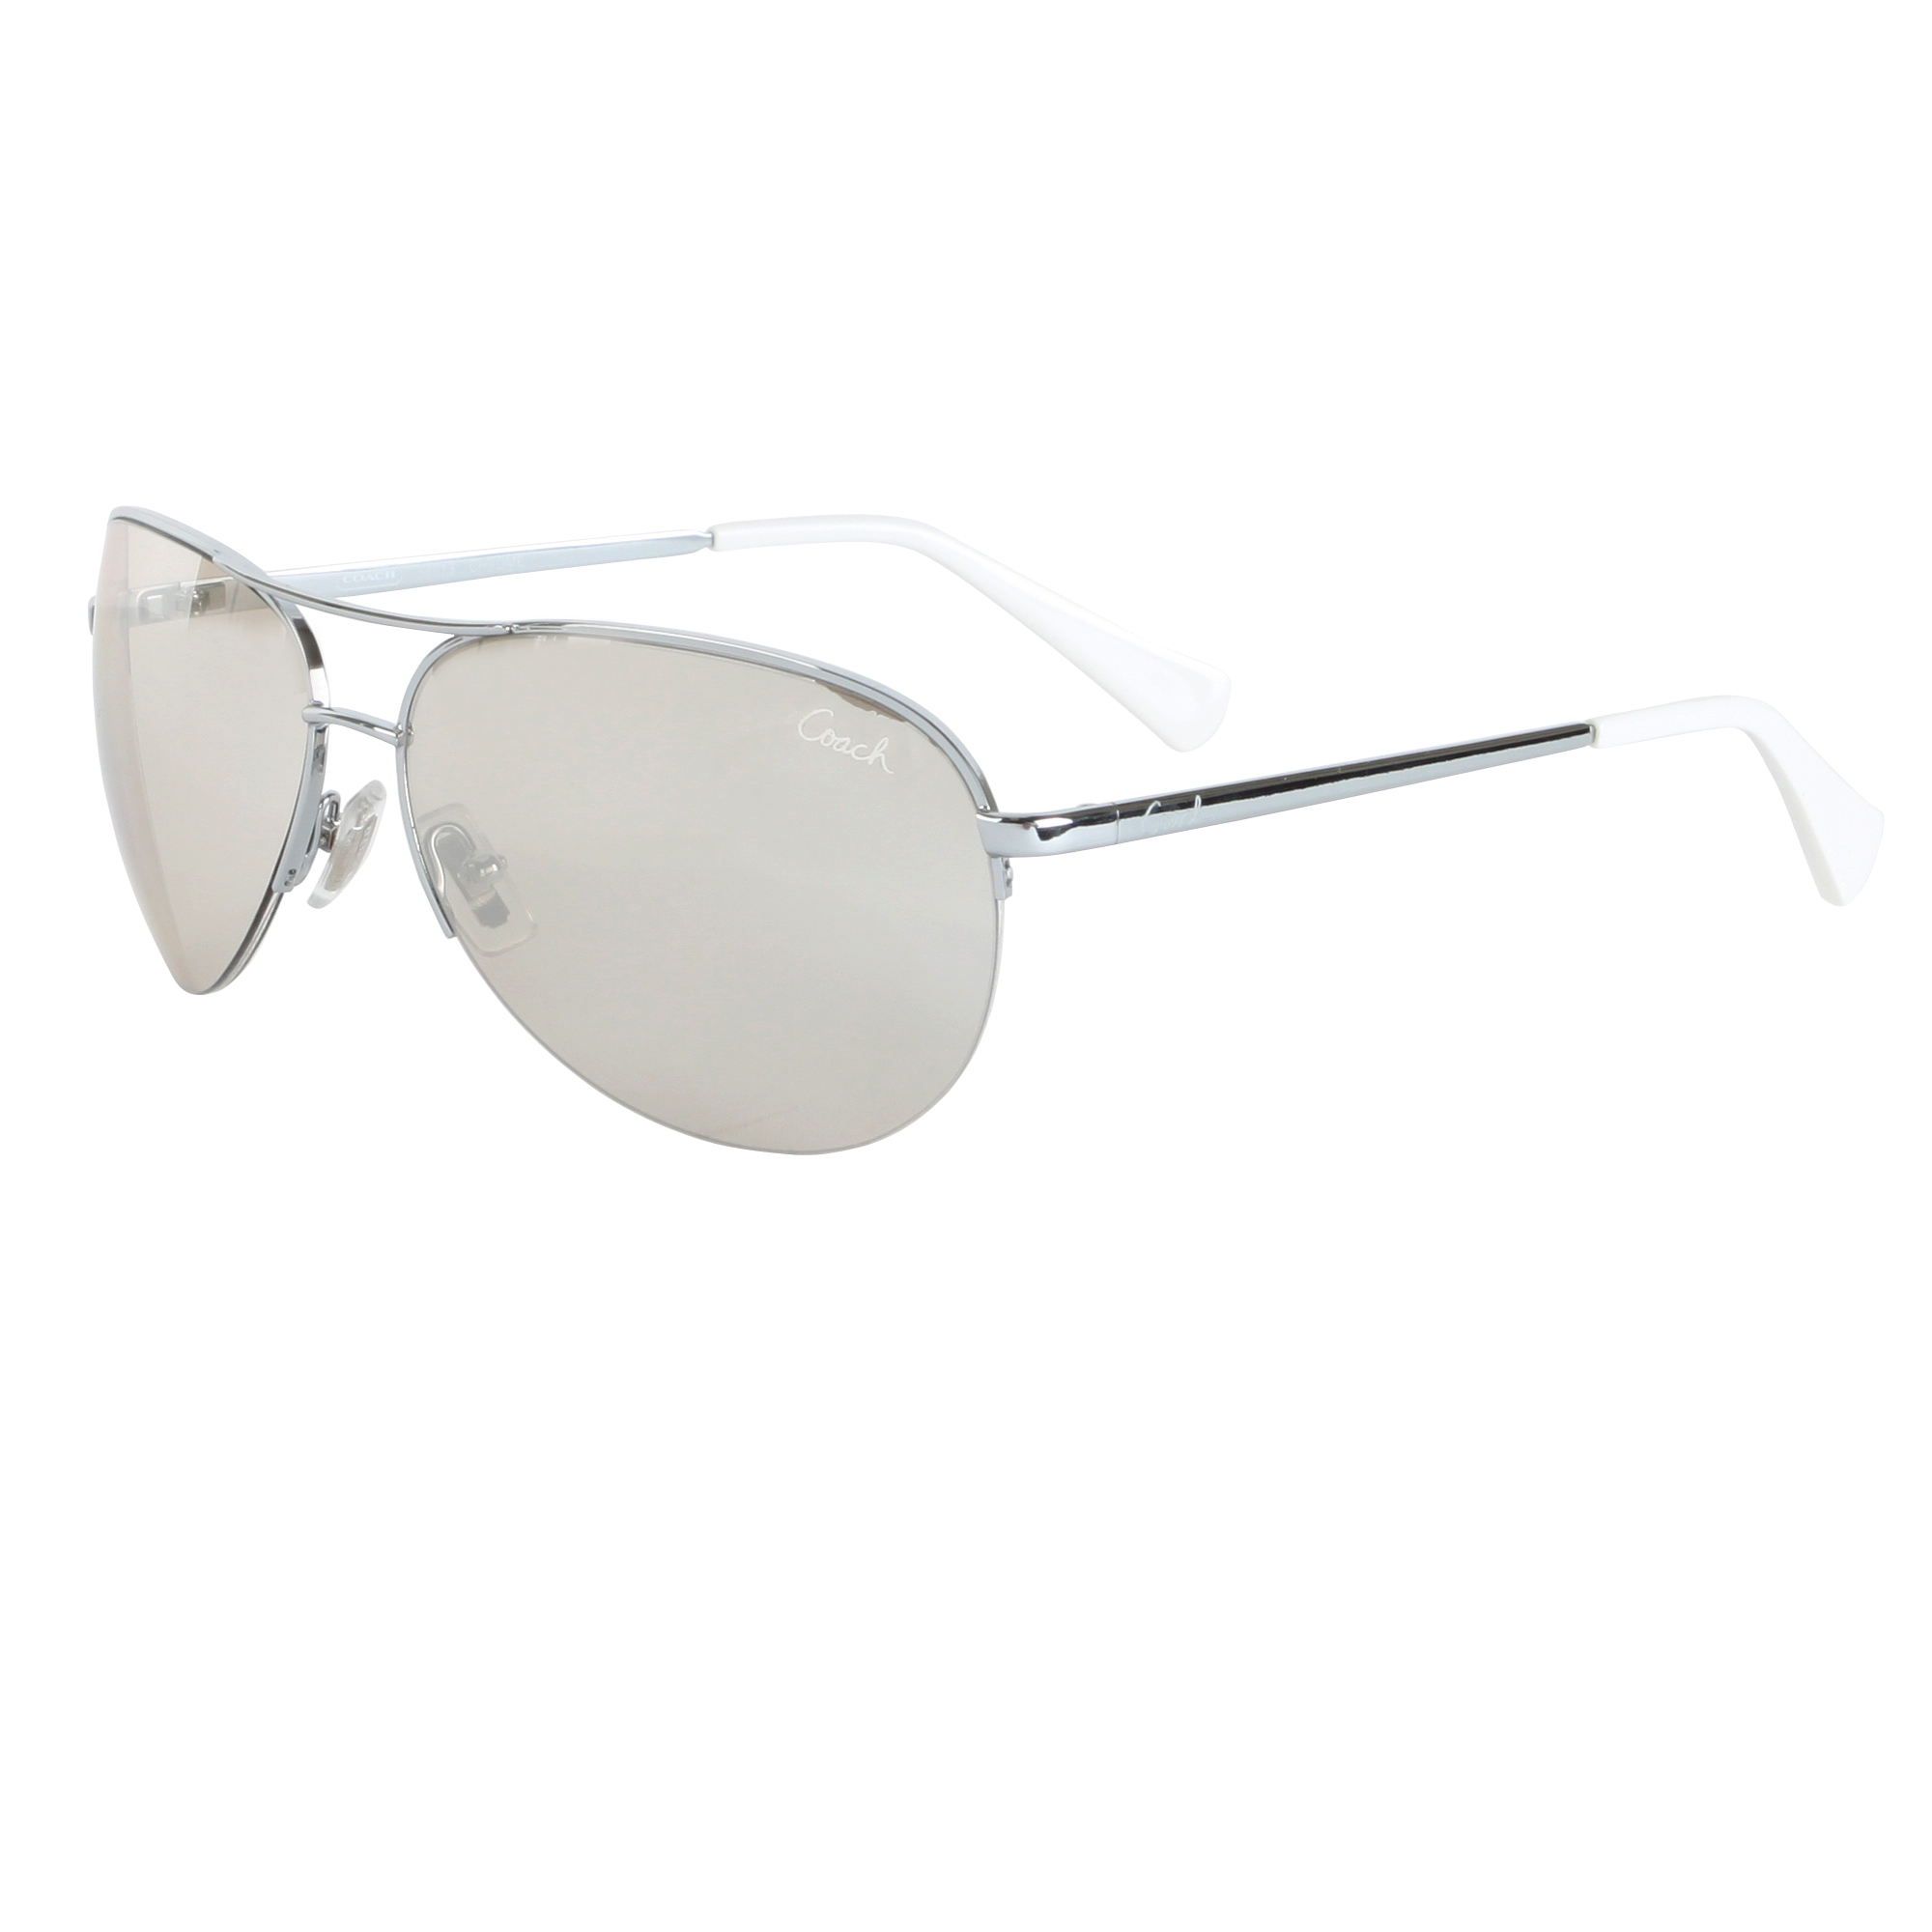 Coach S1013 Sunglasses